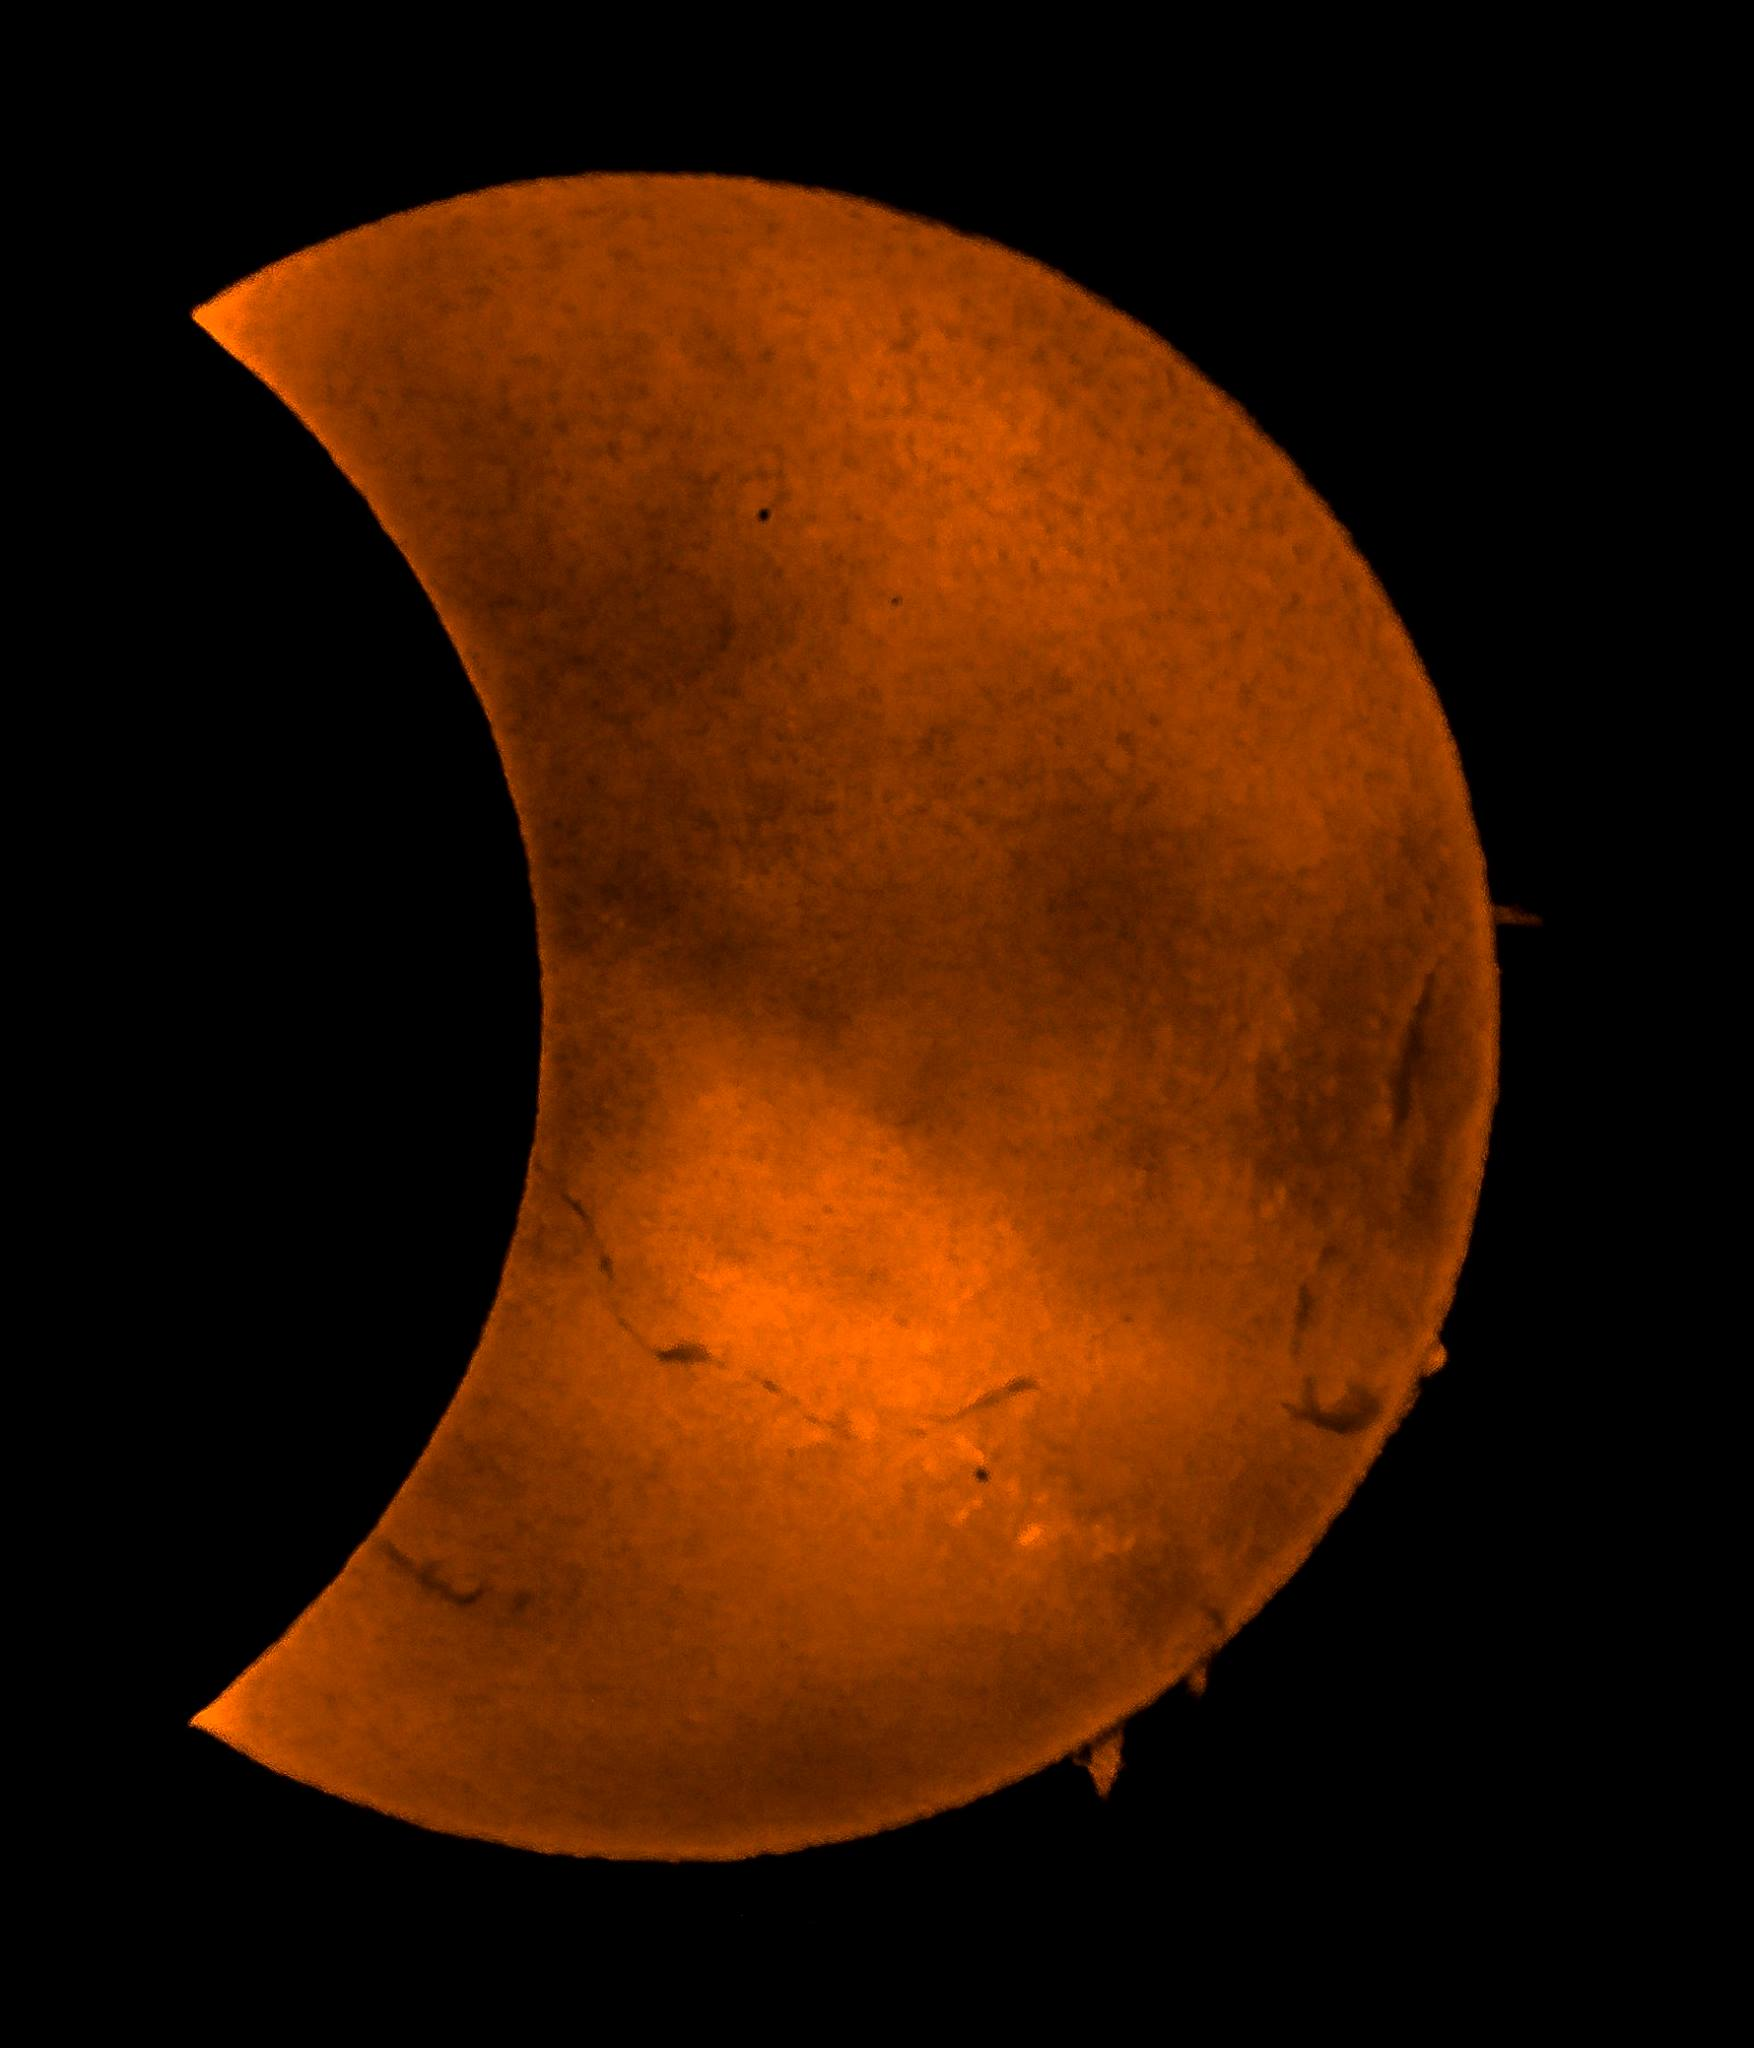 The eclipse by HCO member Matt Armitage